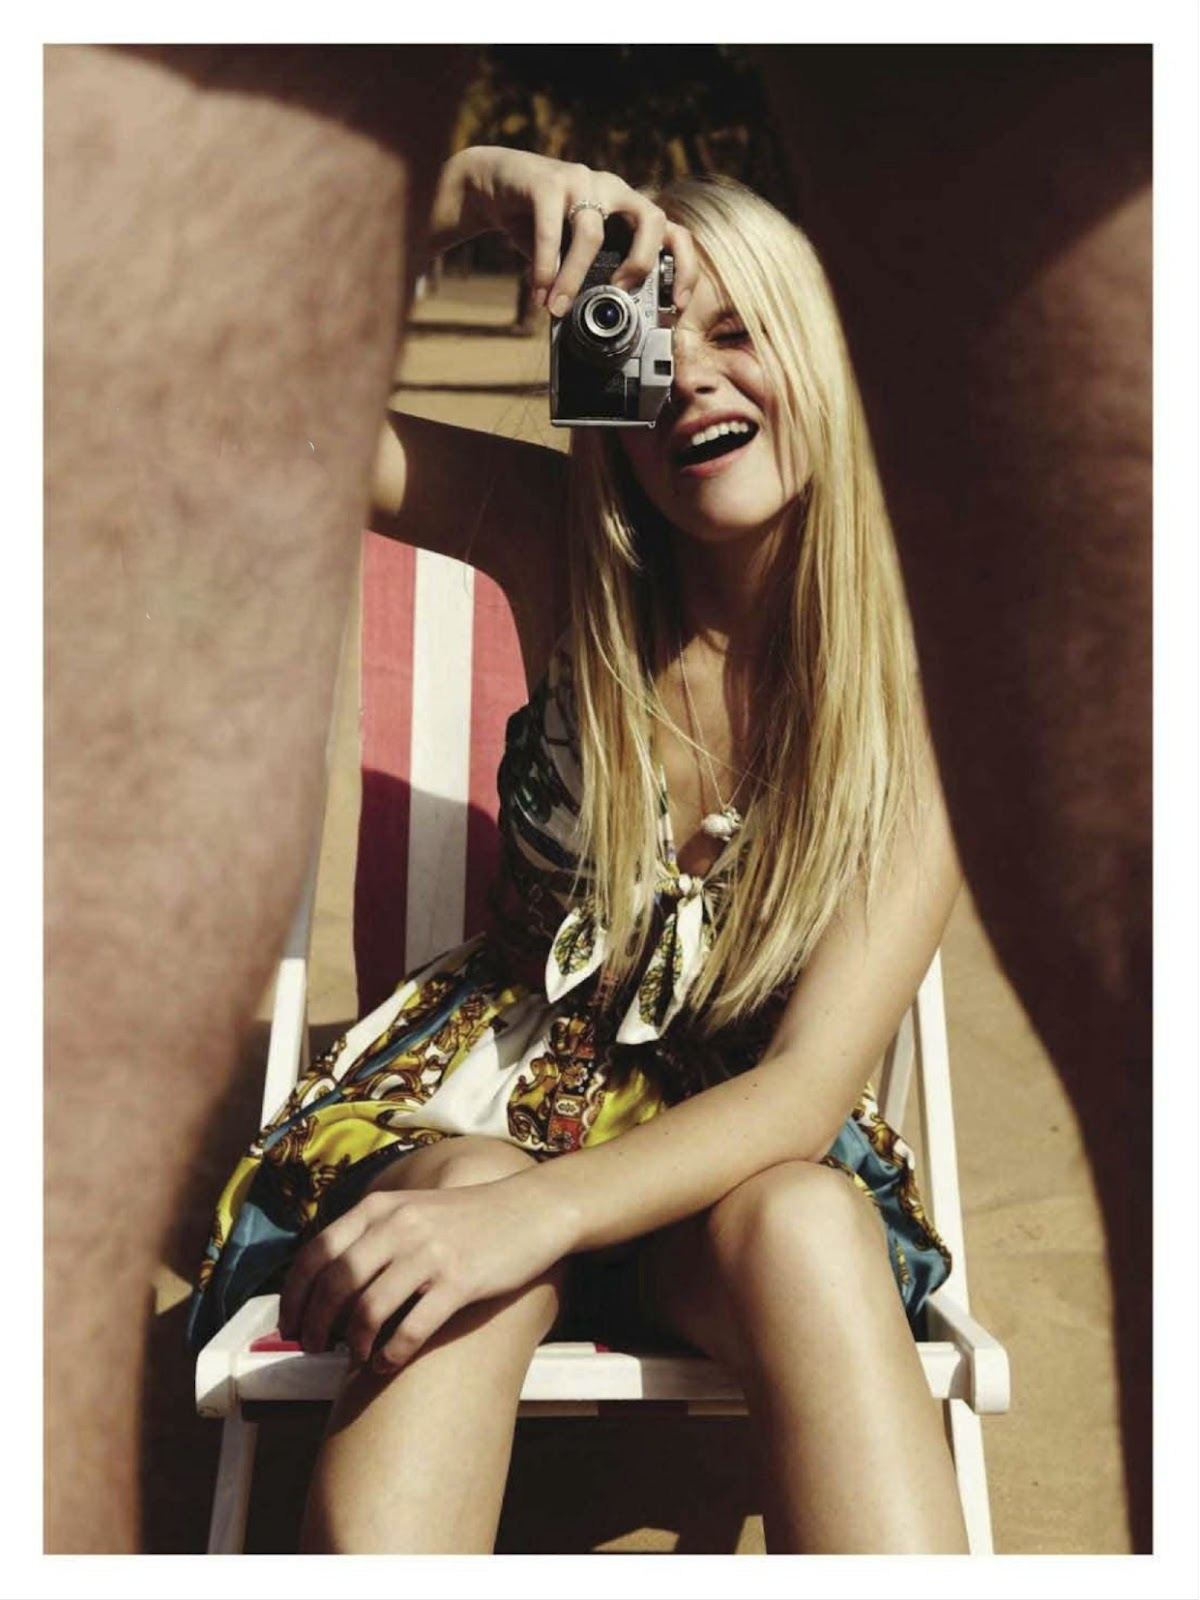 nadine leopold by paul bellaart